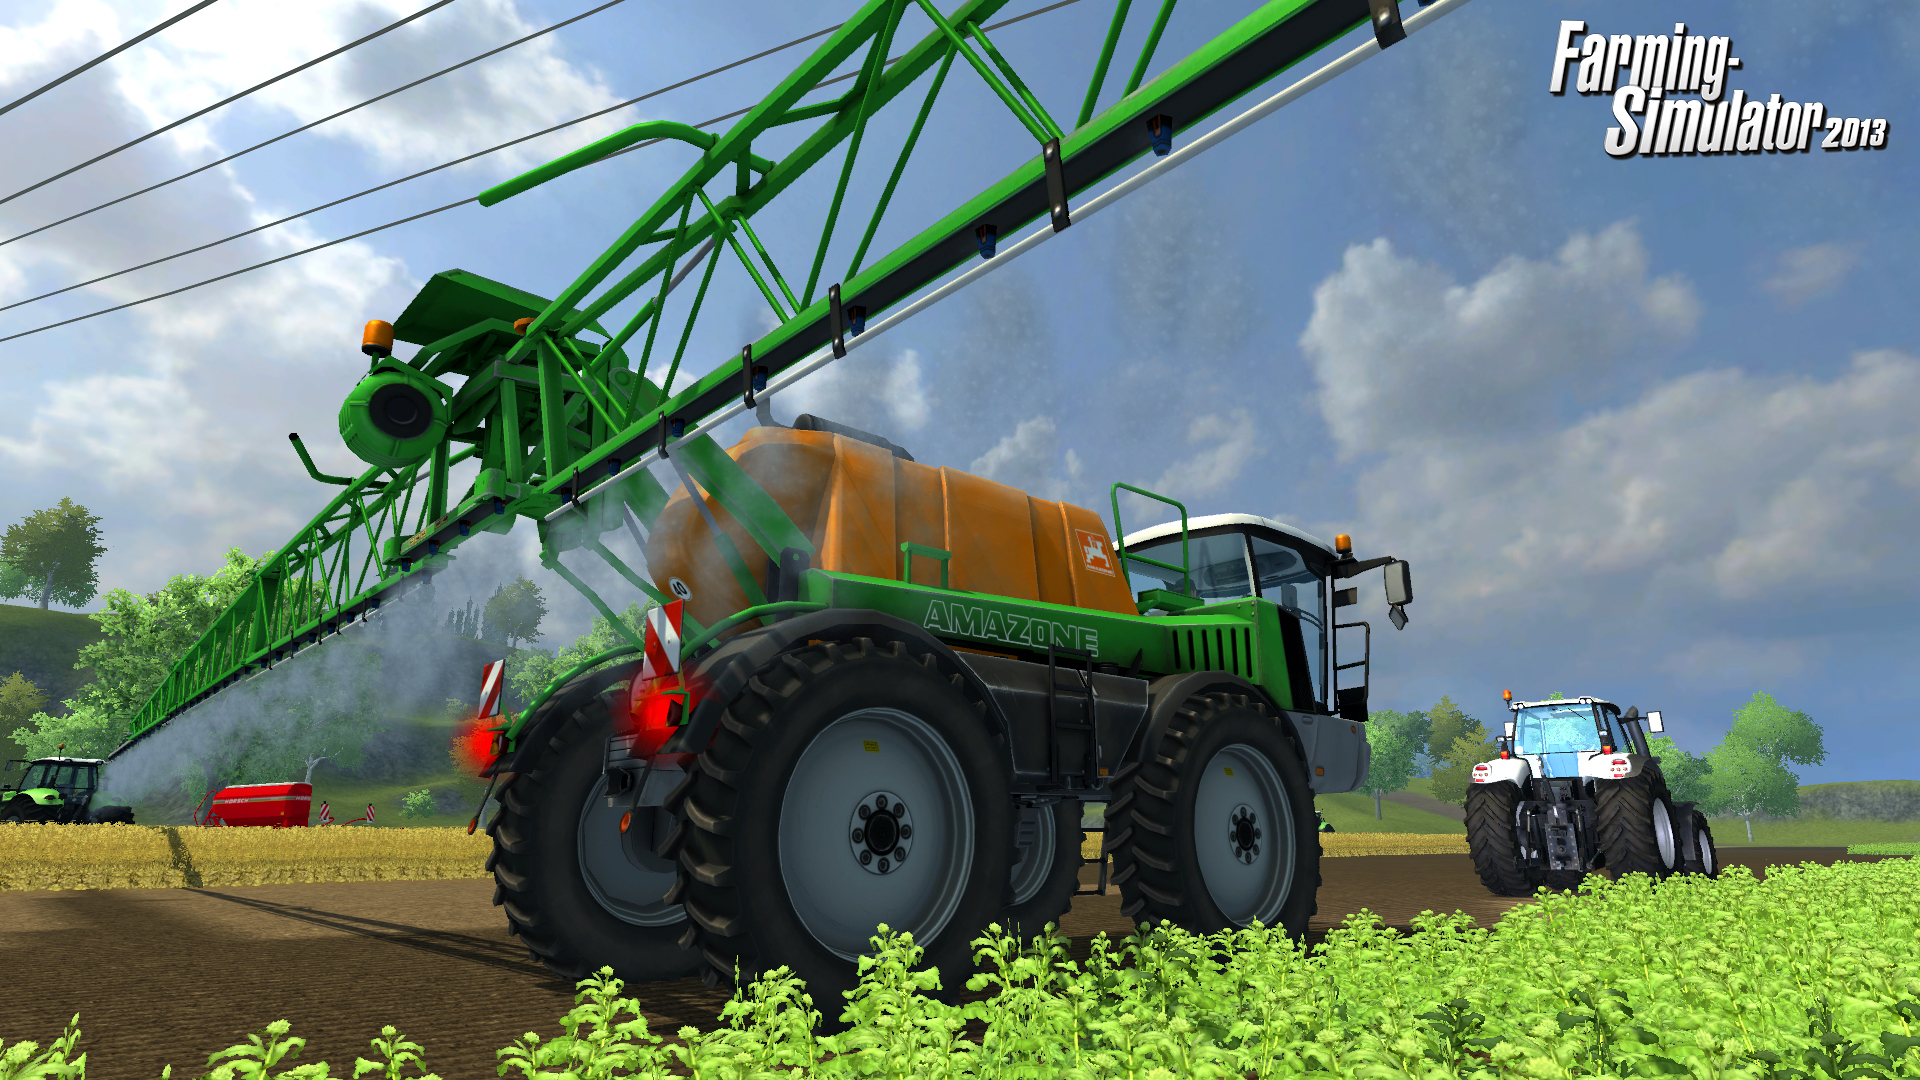 Farming Simulator 2013 receives a 3.75/5.0